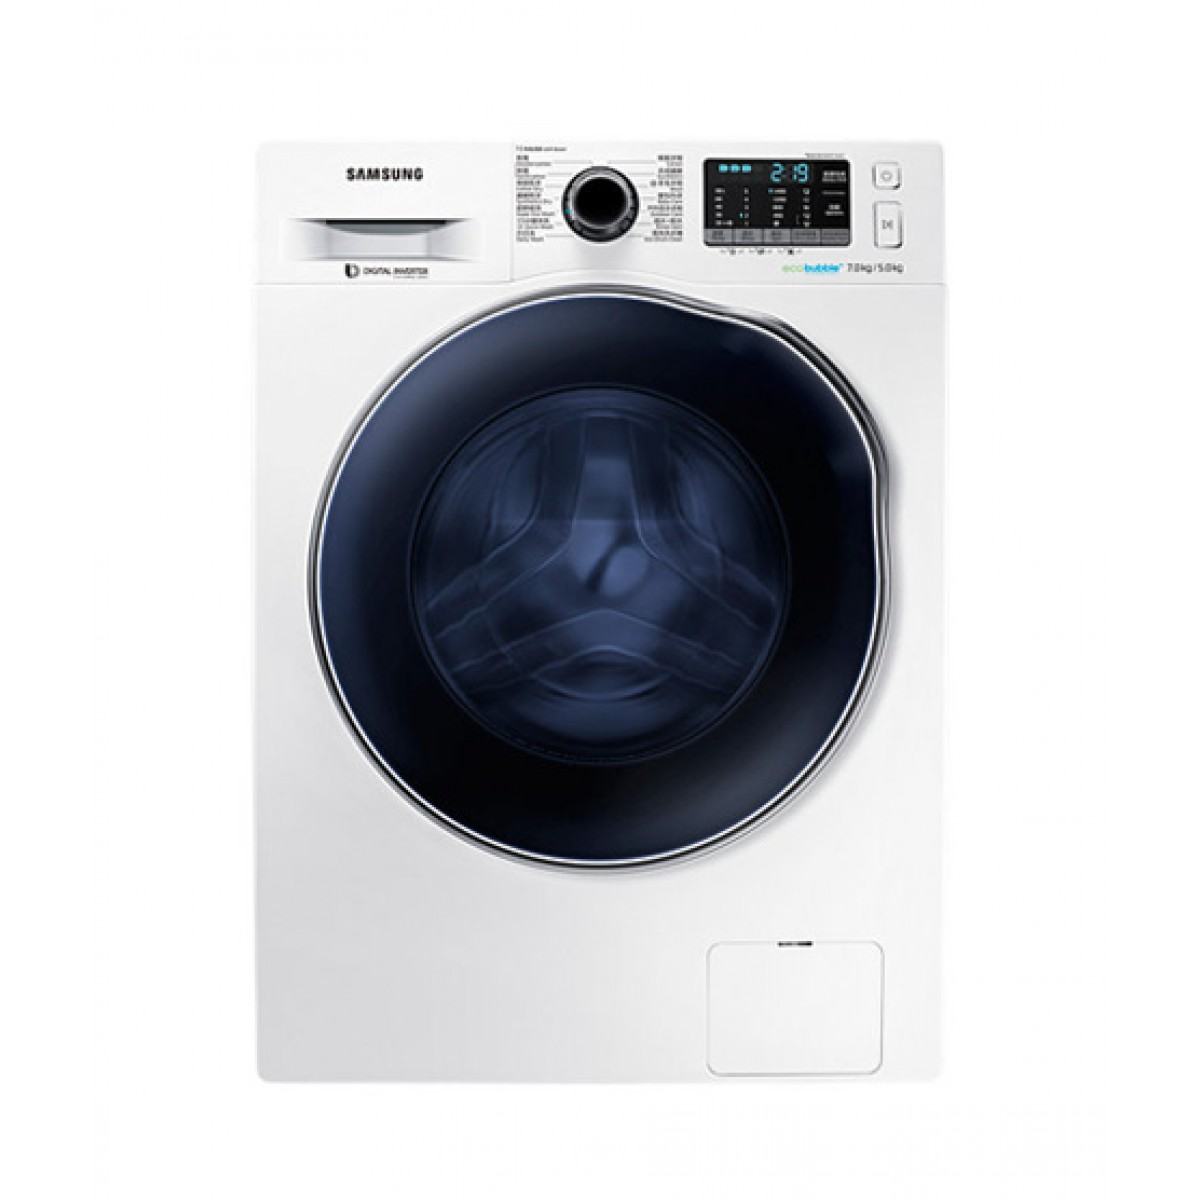 Samsung Fully Automatic Washing Machine Price In Pakistan Buy Samsung Front Load Washing Machine 7 Kg Wd70j5410aw Sh Ishopping Pk